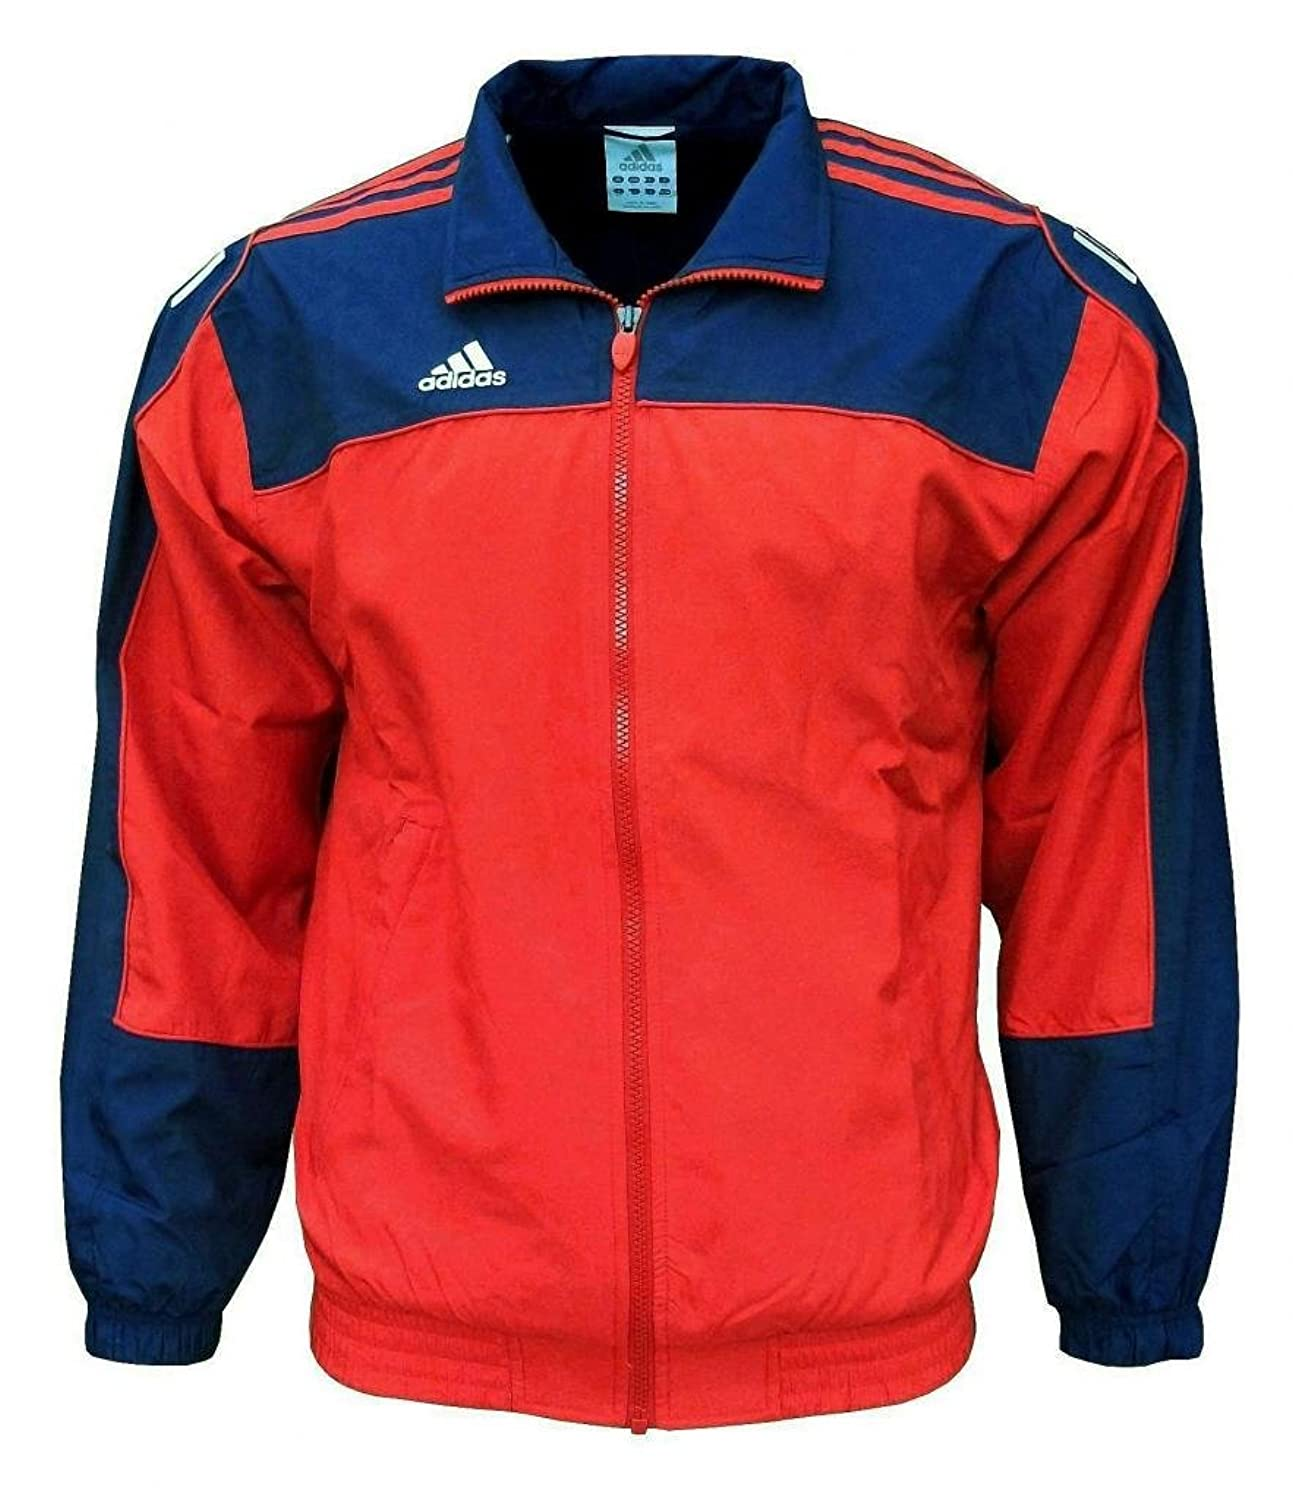 Adidas Training Jacket Red